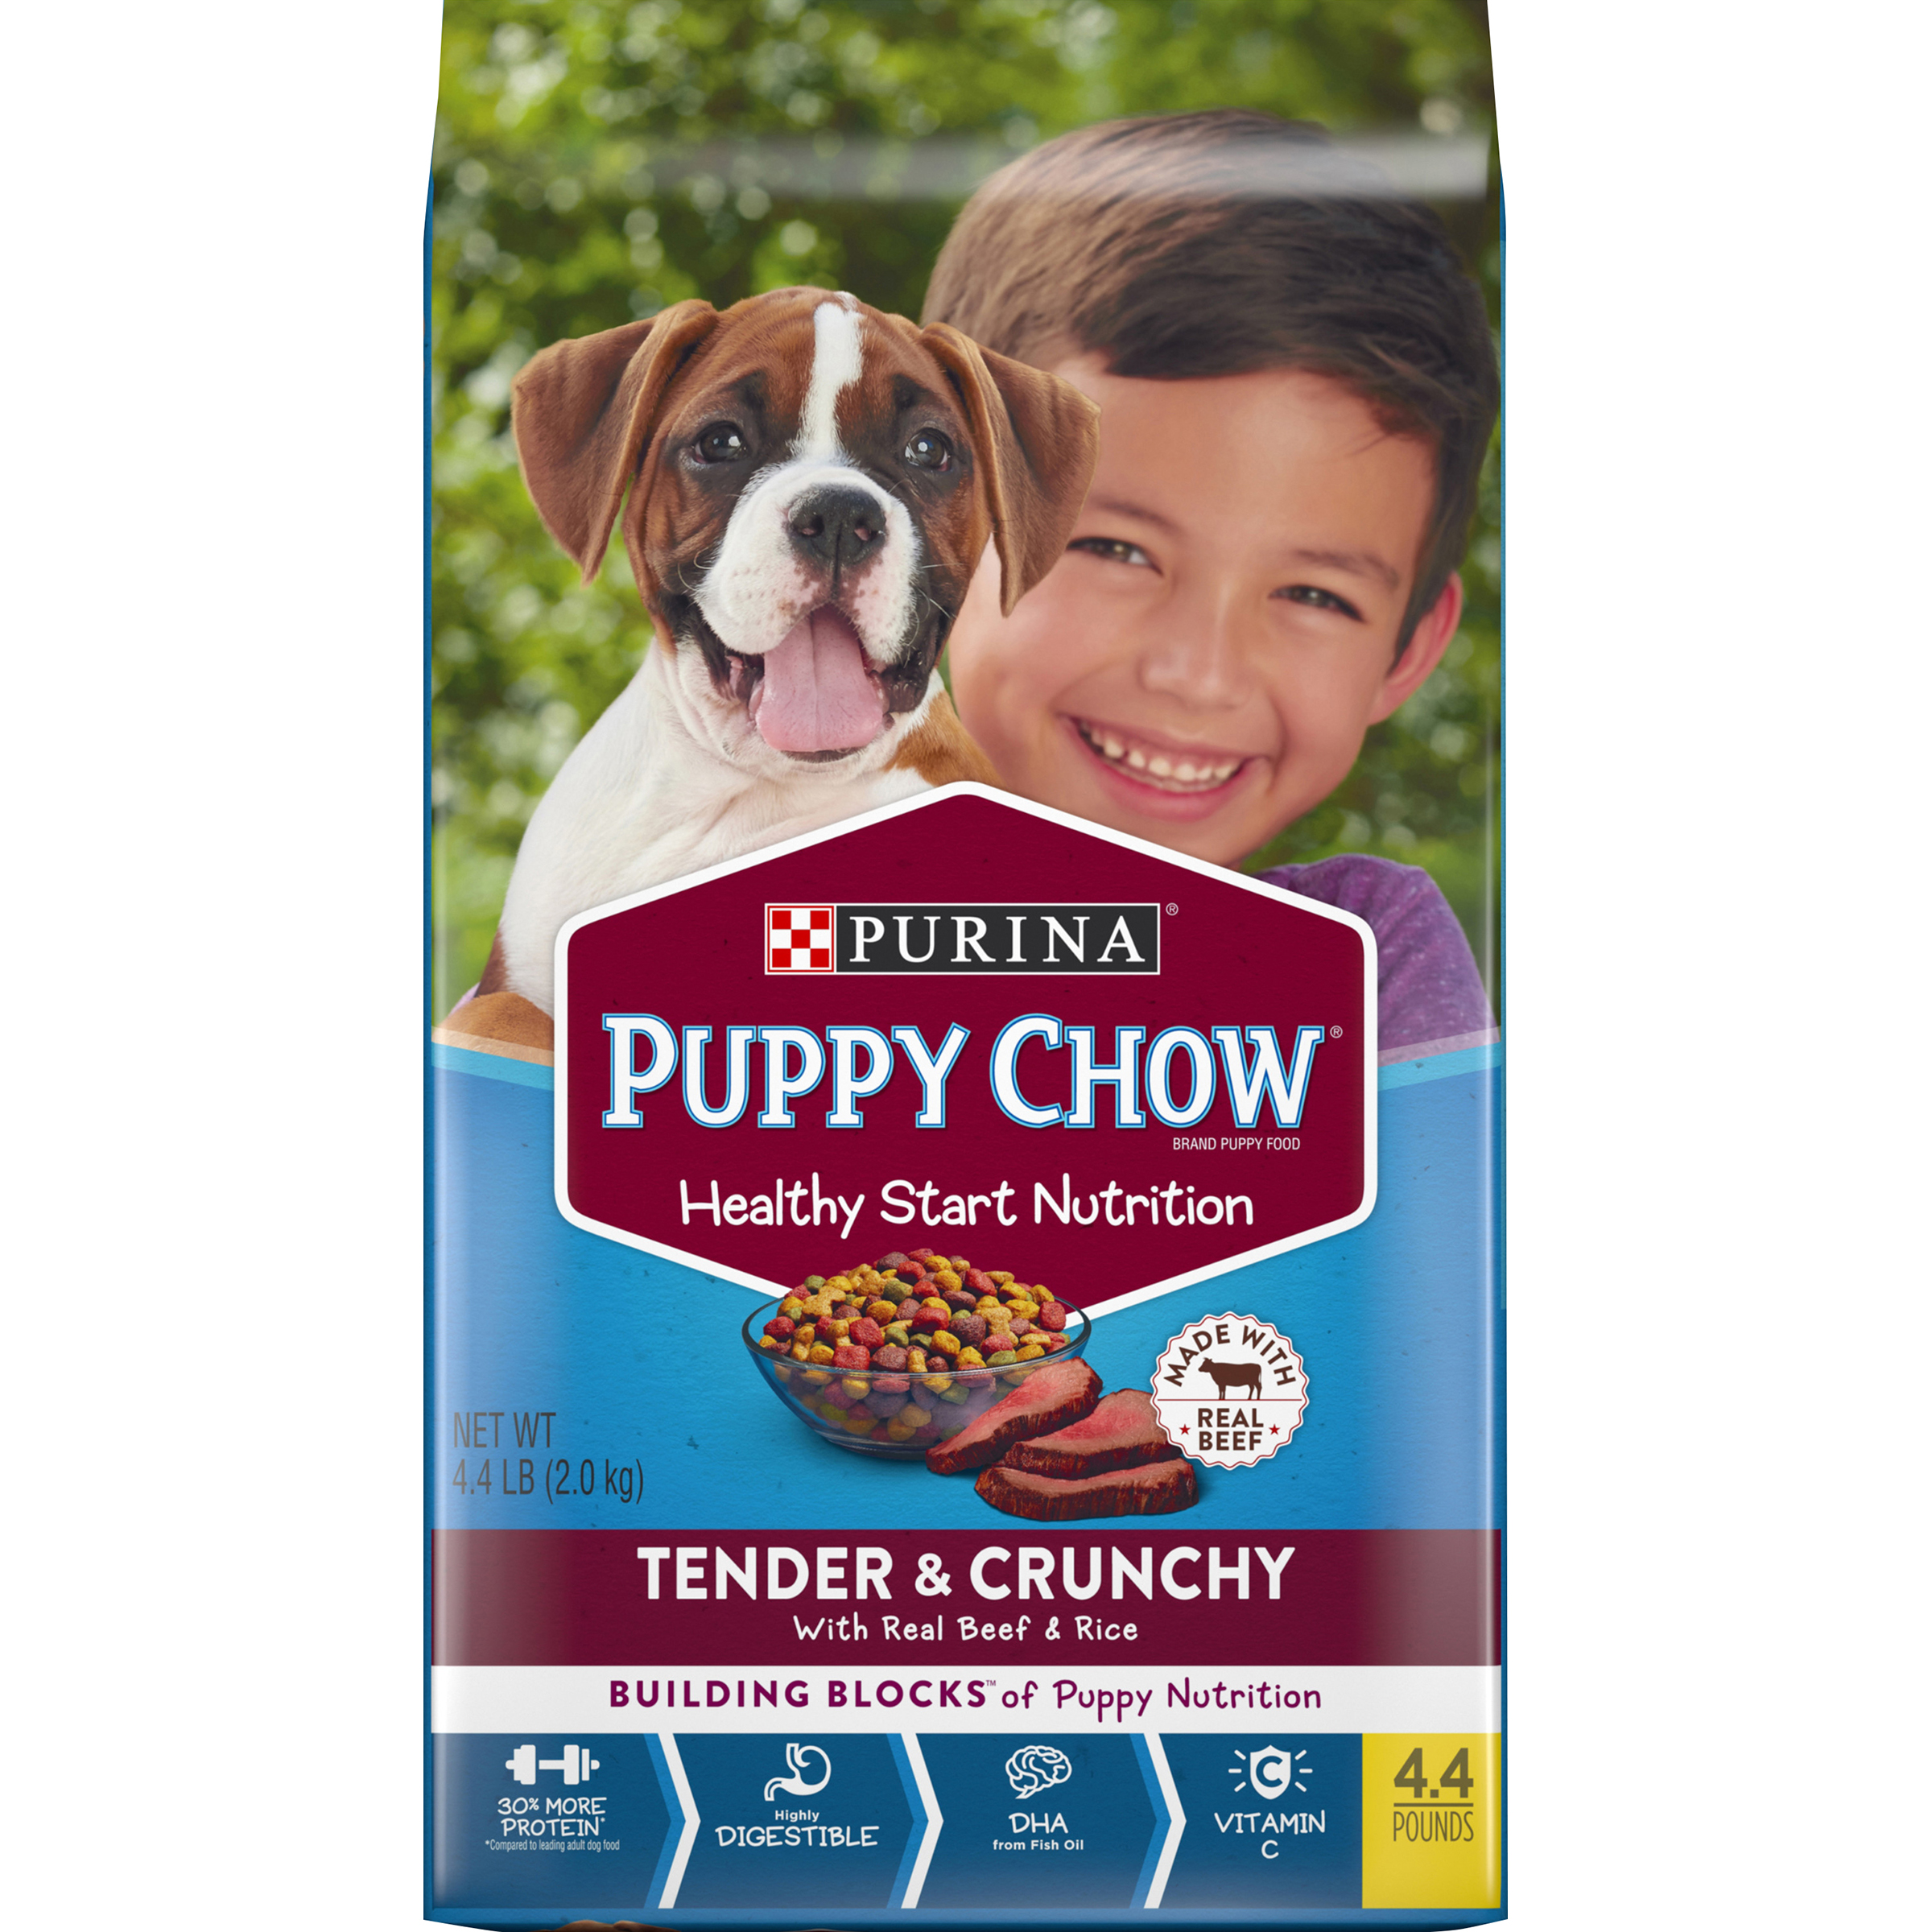 Purina Puppy Chow High Protein Dry Puppy Food; Tender & Crunchy with Real Beef - 4.4 lb. Bag